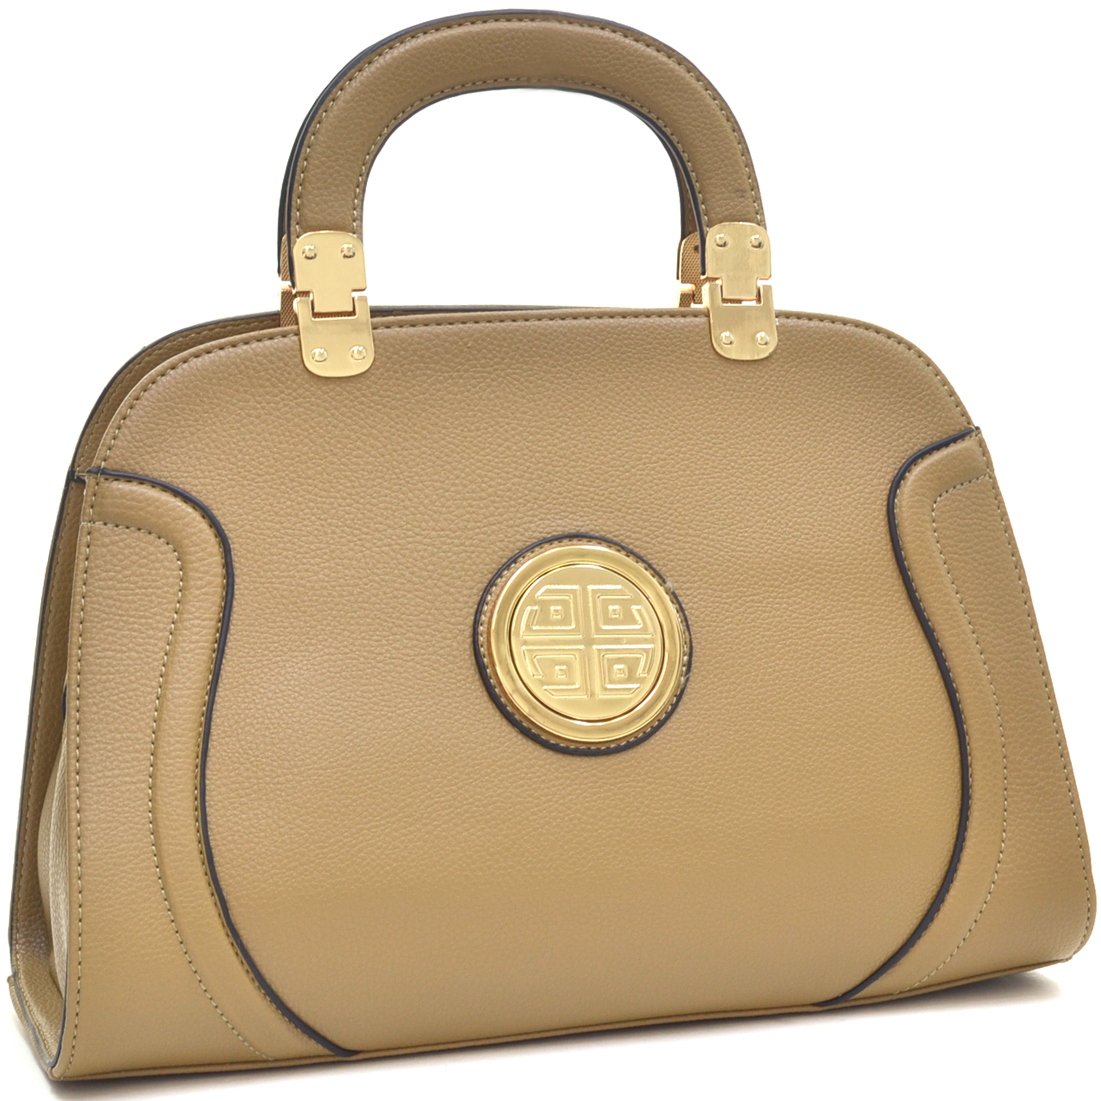 Dasein® Fashion Stitched Zip Around Gold Emblem Fashion Handbag